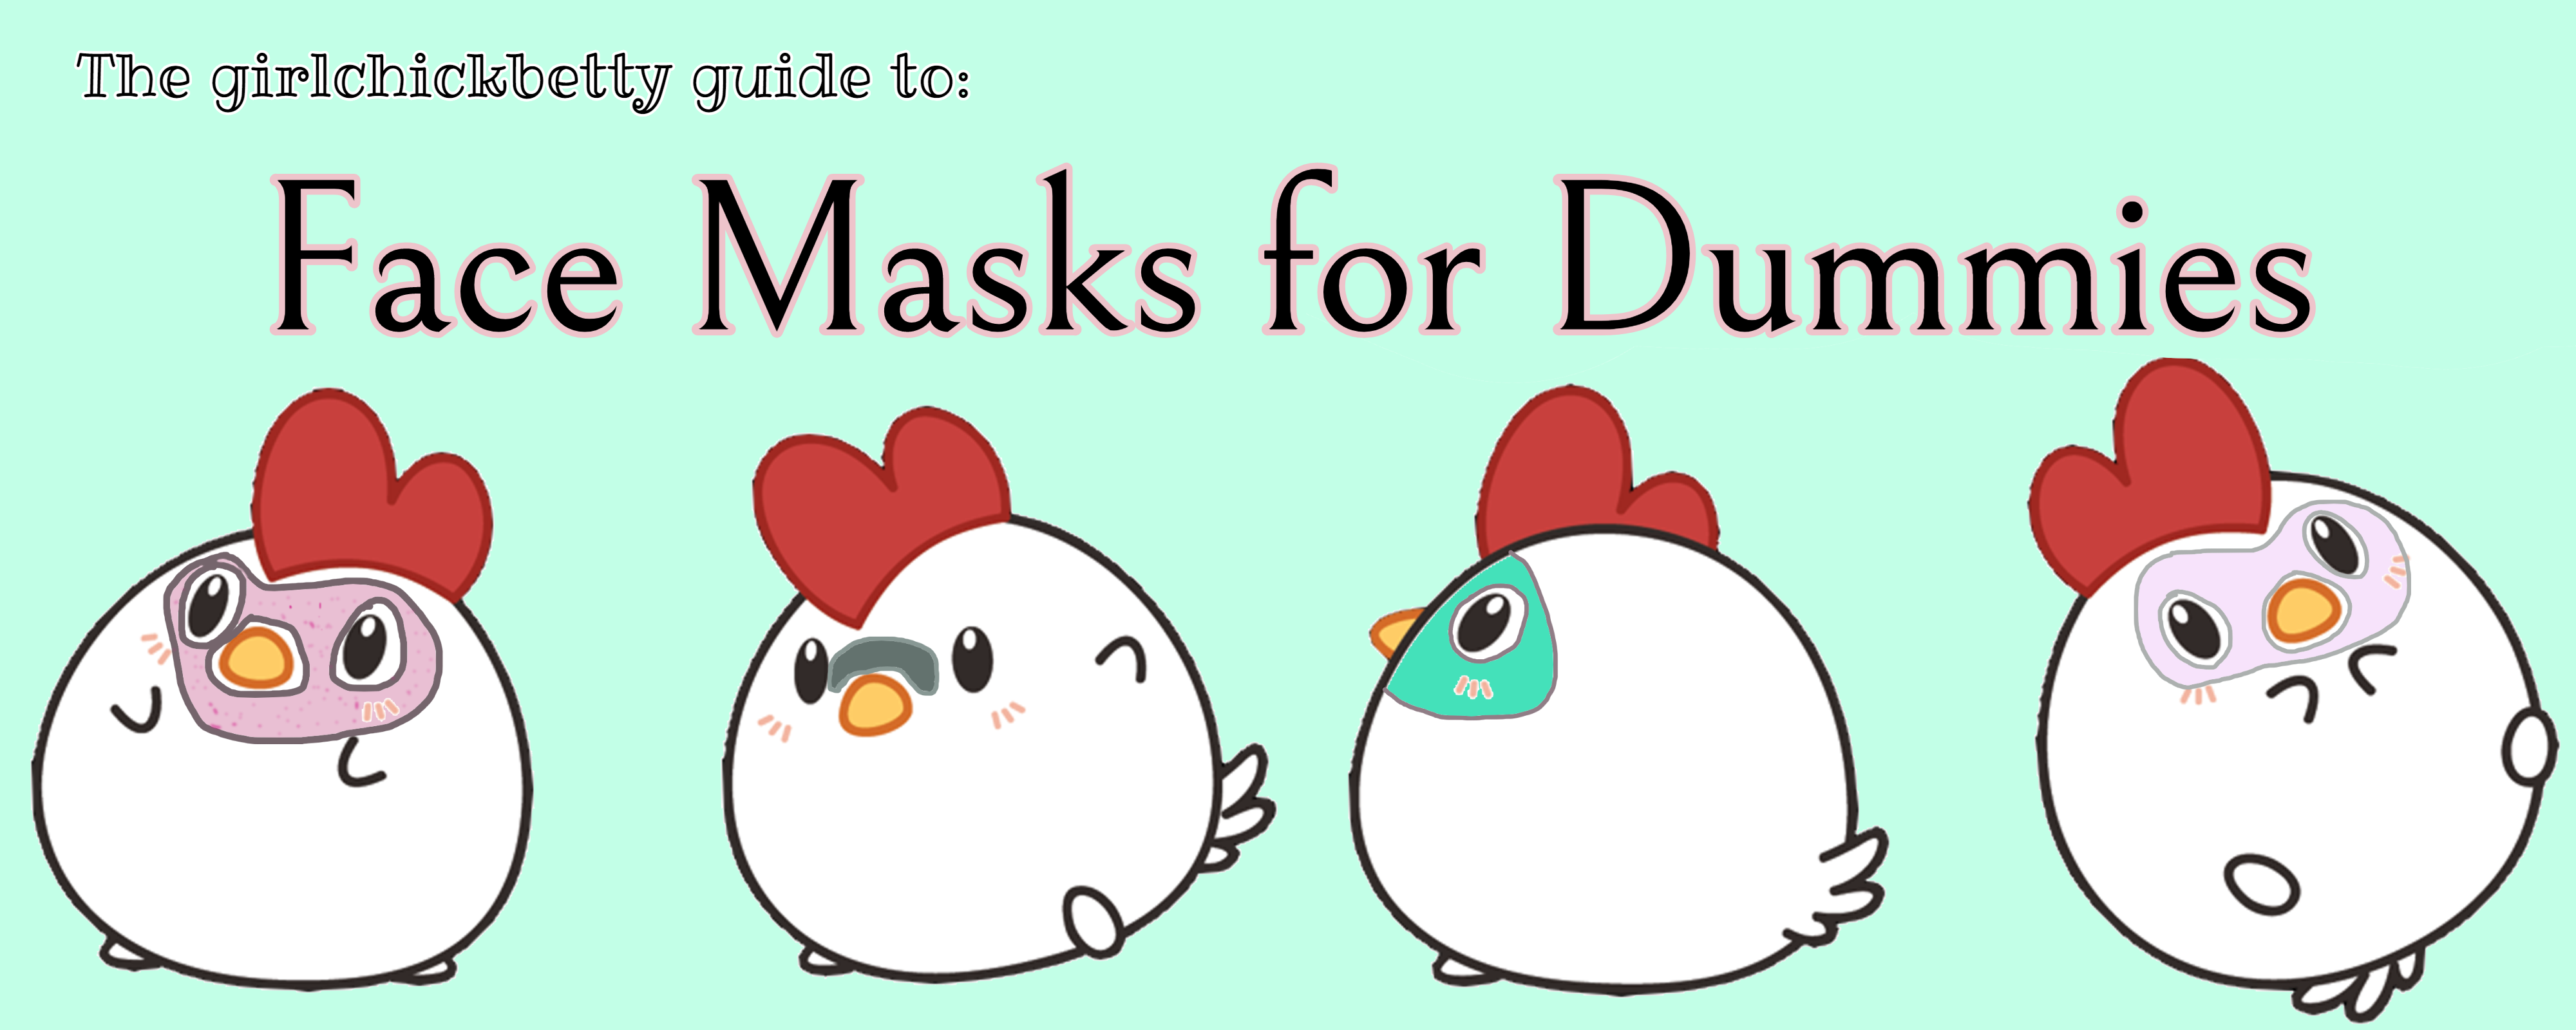 Face masks for dummies